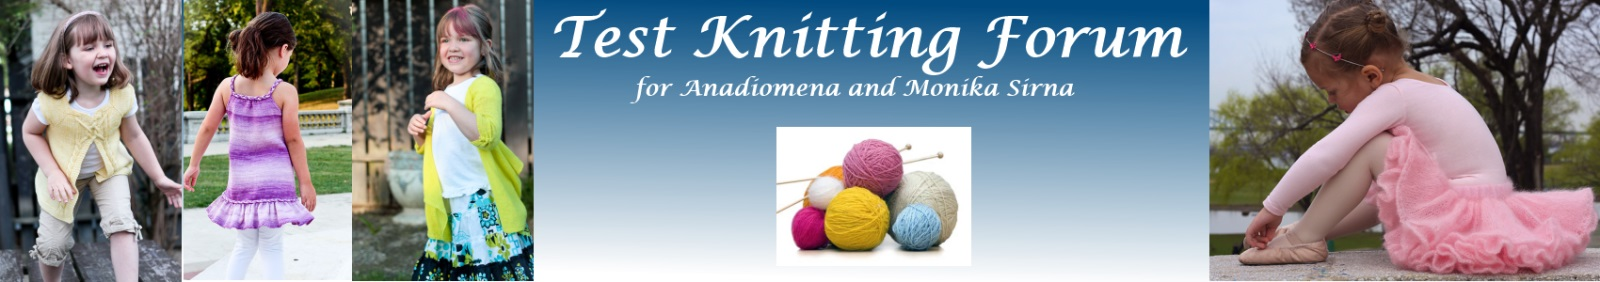 Test Knitting Forum for Anadiomena and Monika Sirna